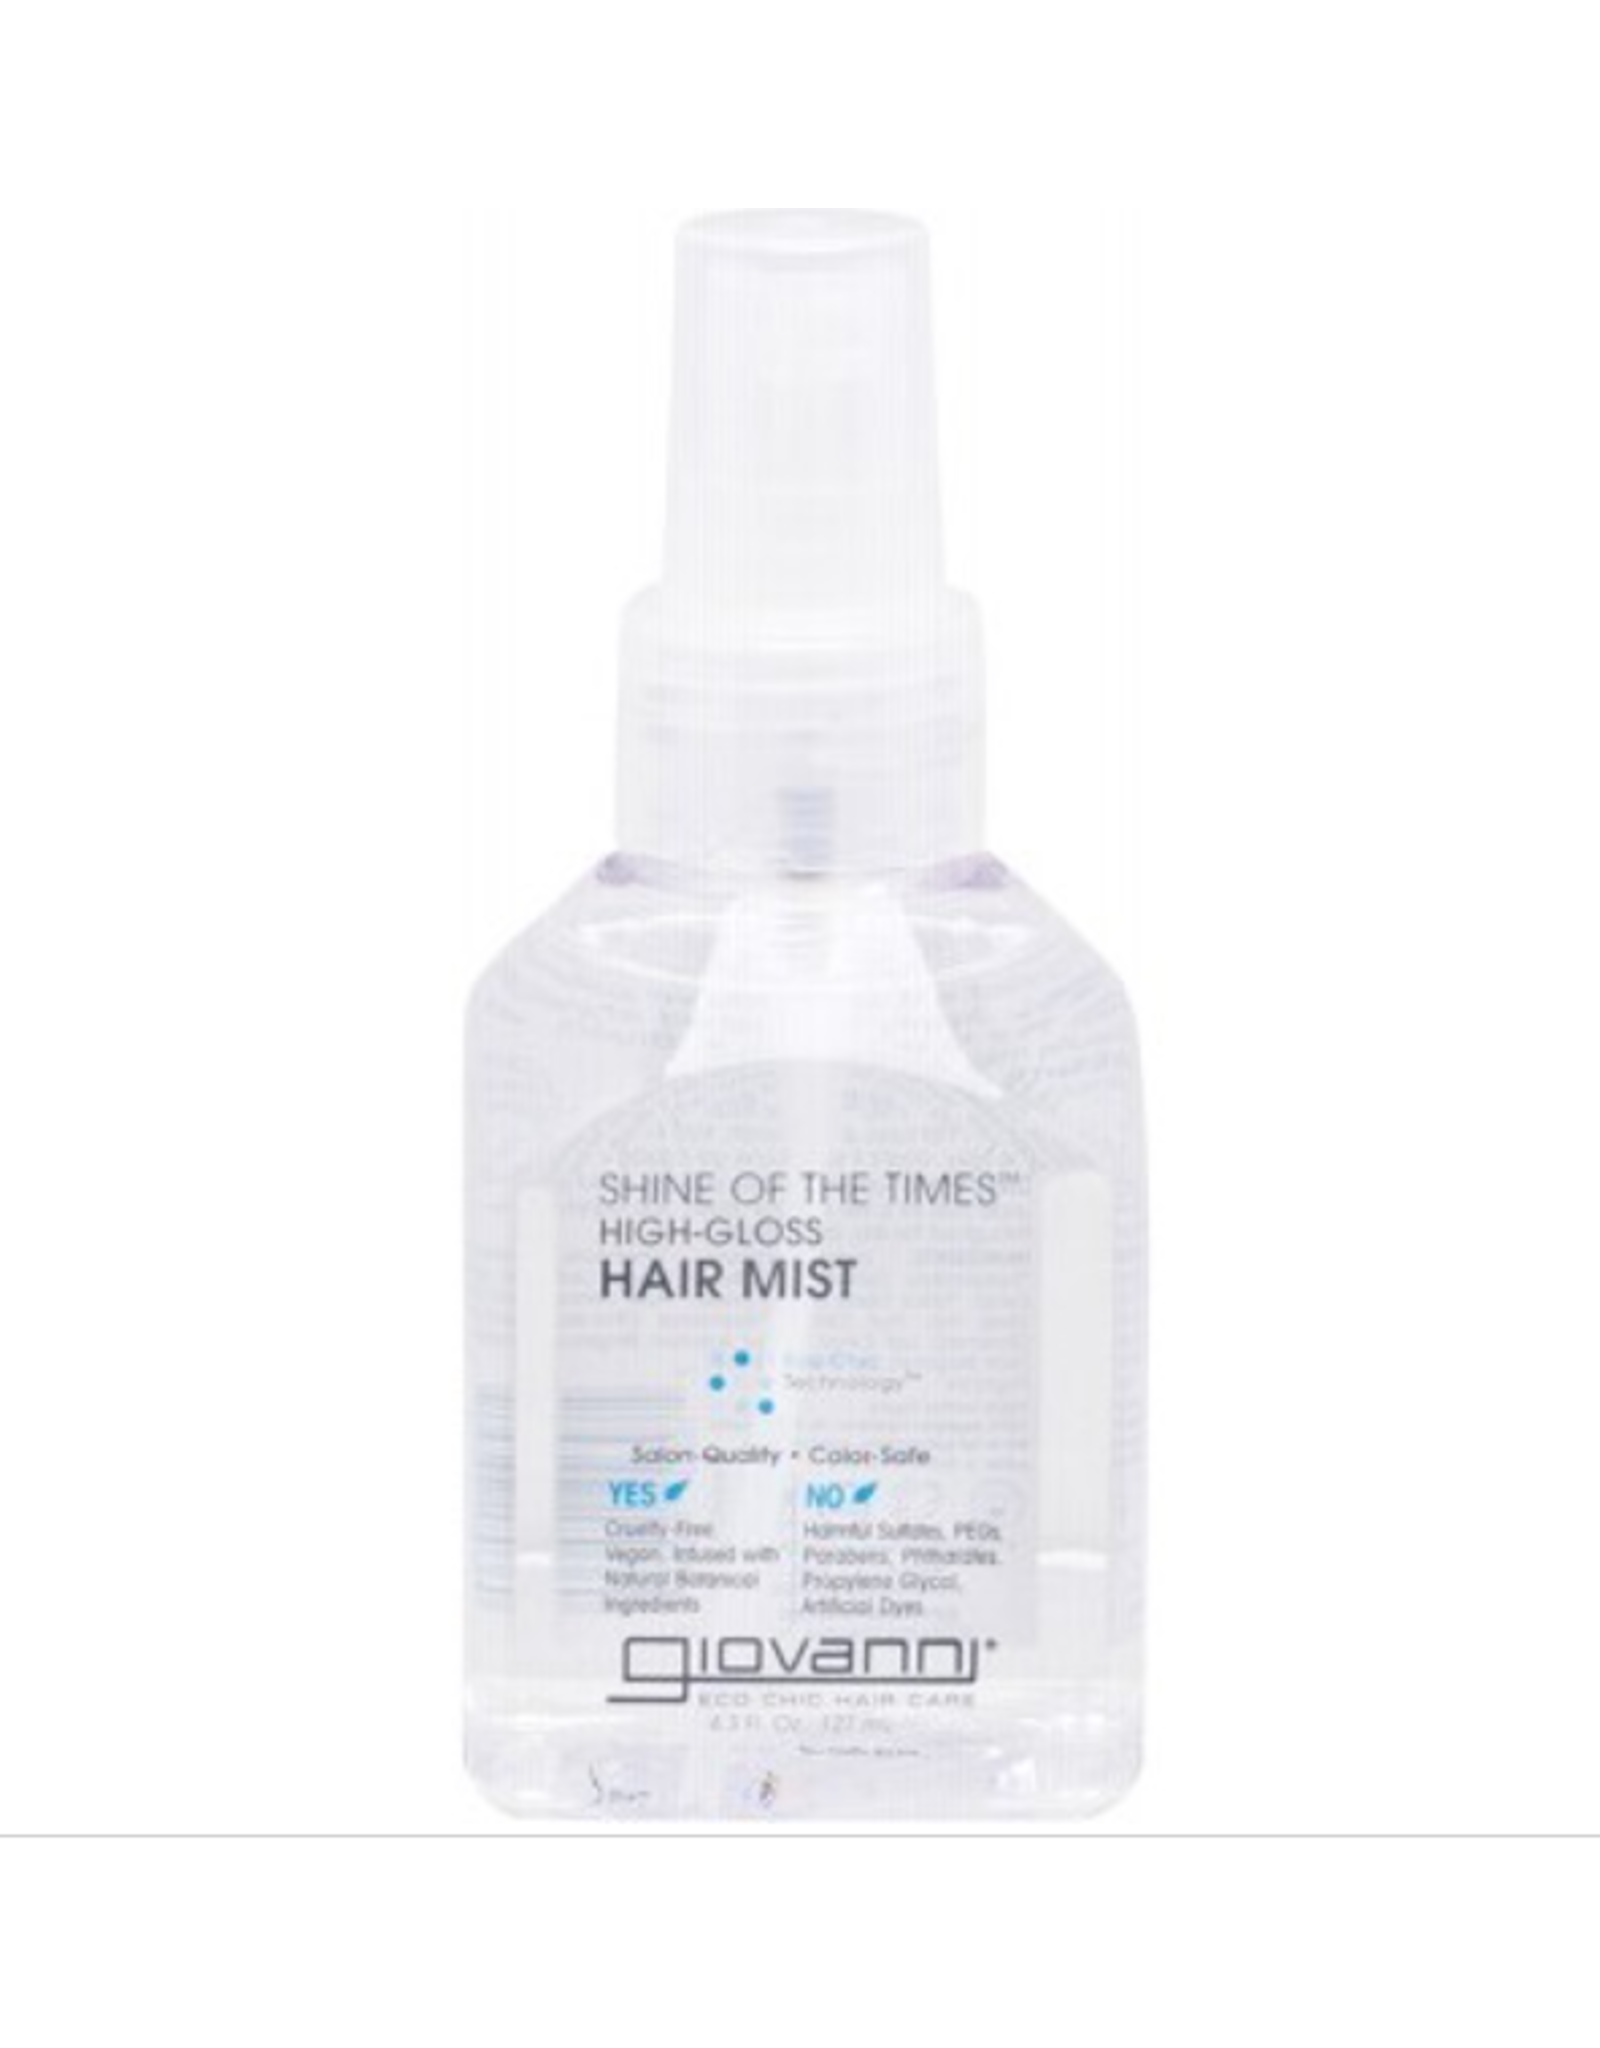 Giovanni Hair Mist (High-Gloss) Shine Of The Times 127ml